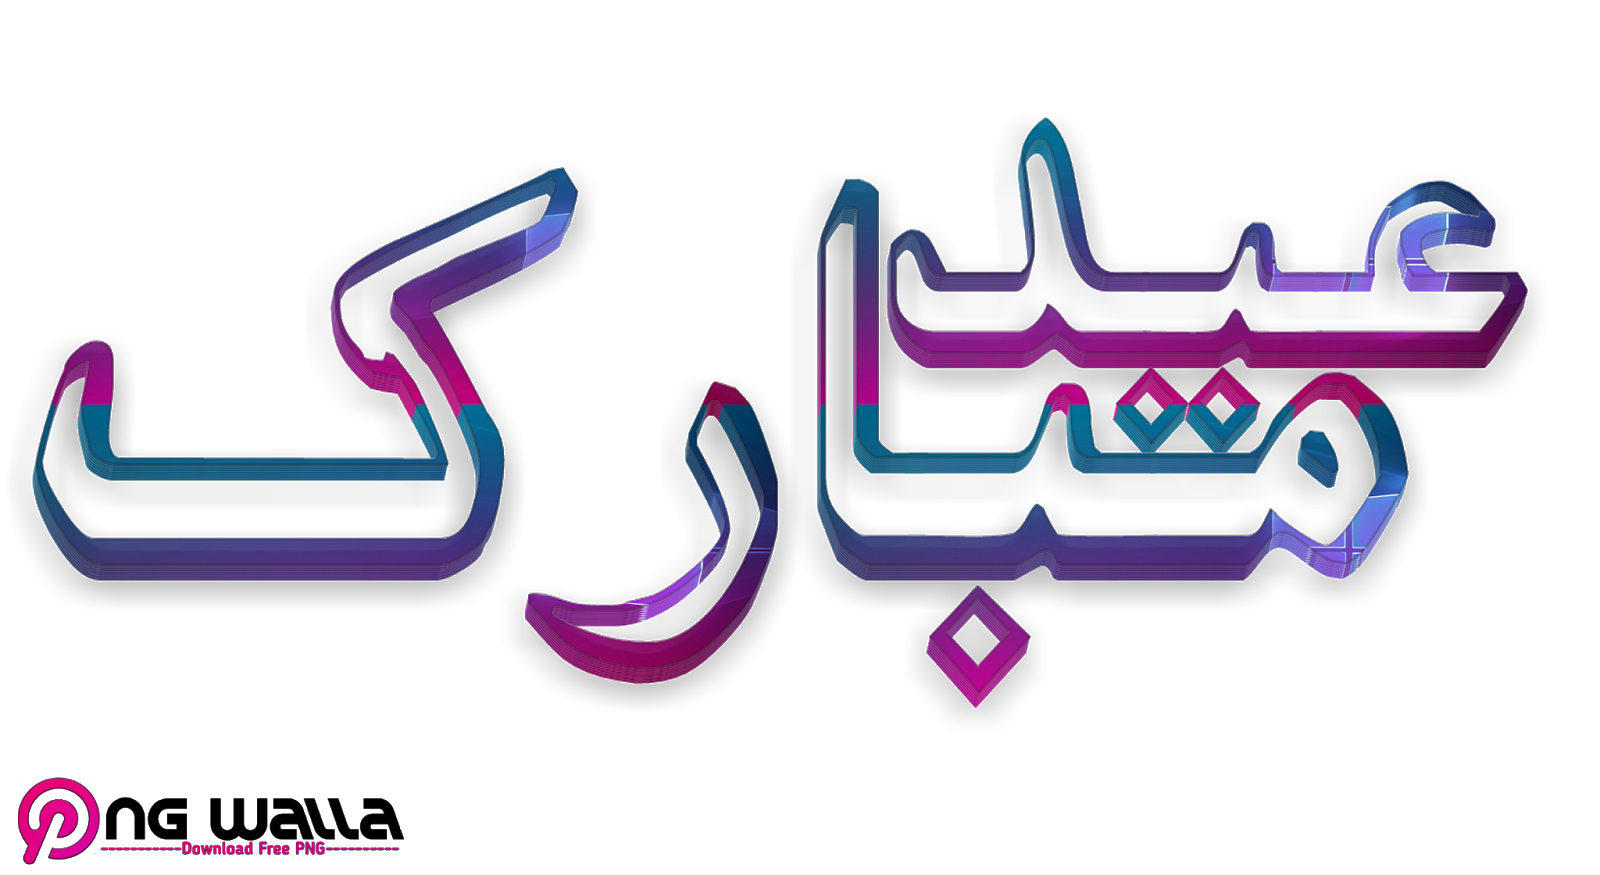 Best Collections Of Eid Ul Adha 2020 Urdu Text Transparent Png Eid Ul Adha Images Quotes Messages Greetings And W Eid Ul Adha Images Eid Ul Adha Eid Cards